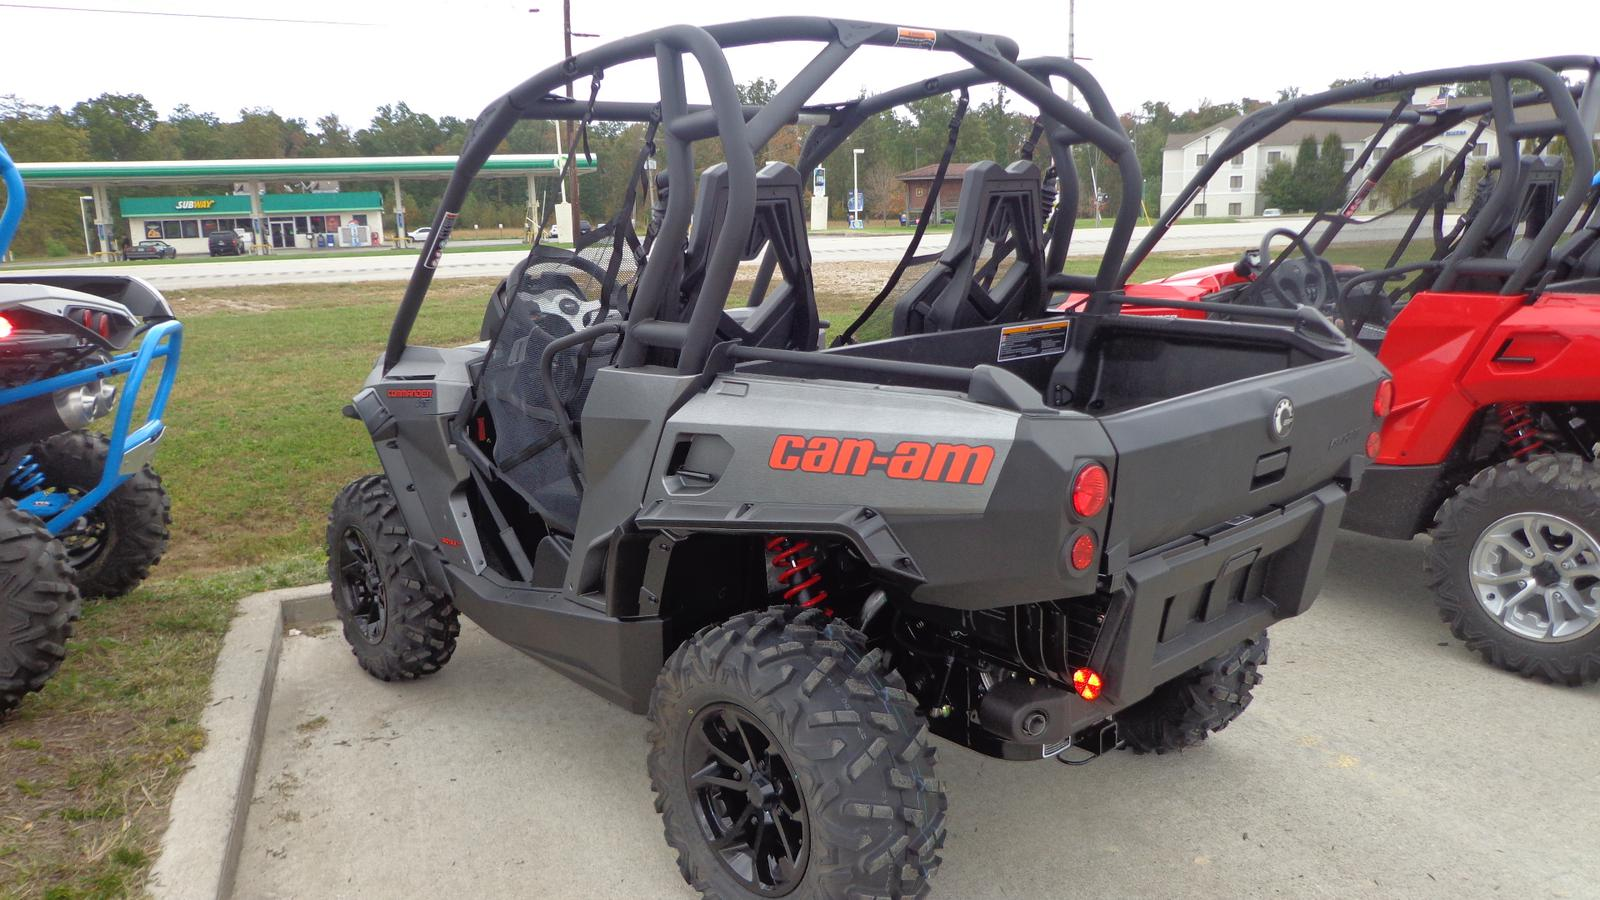 Can am commander 1000 limited 2016 for sale - Dsc03869